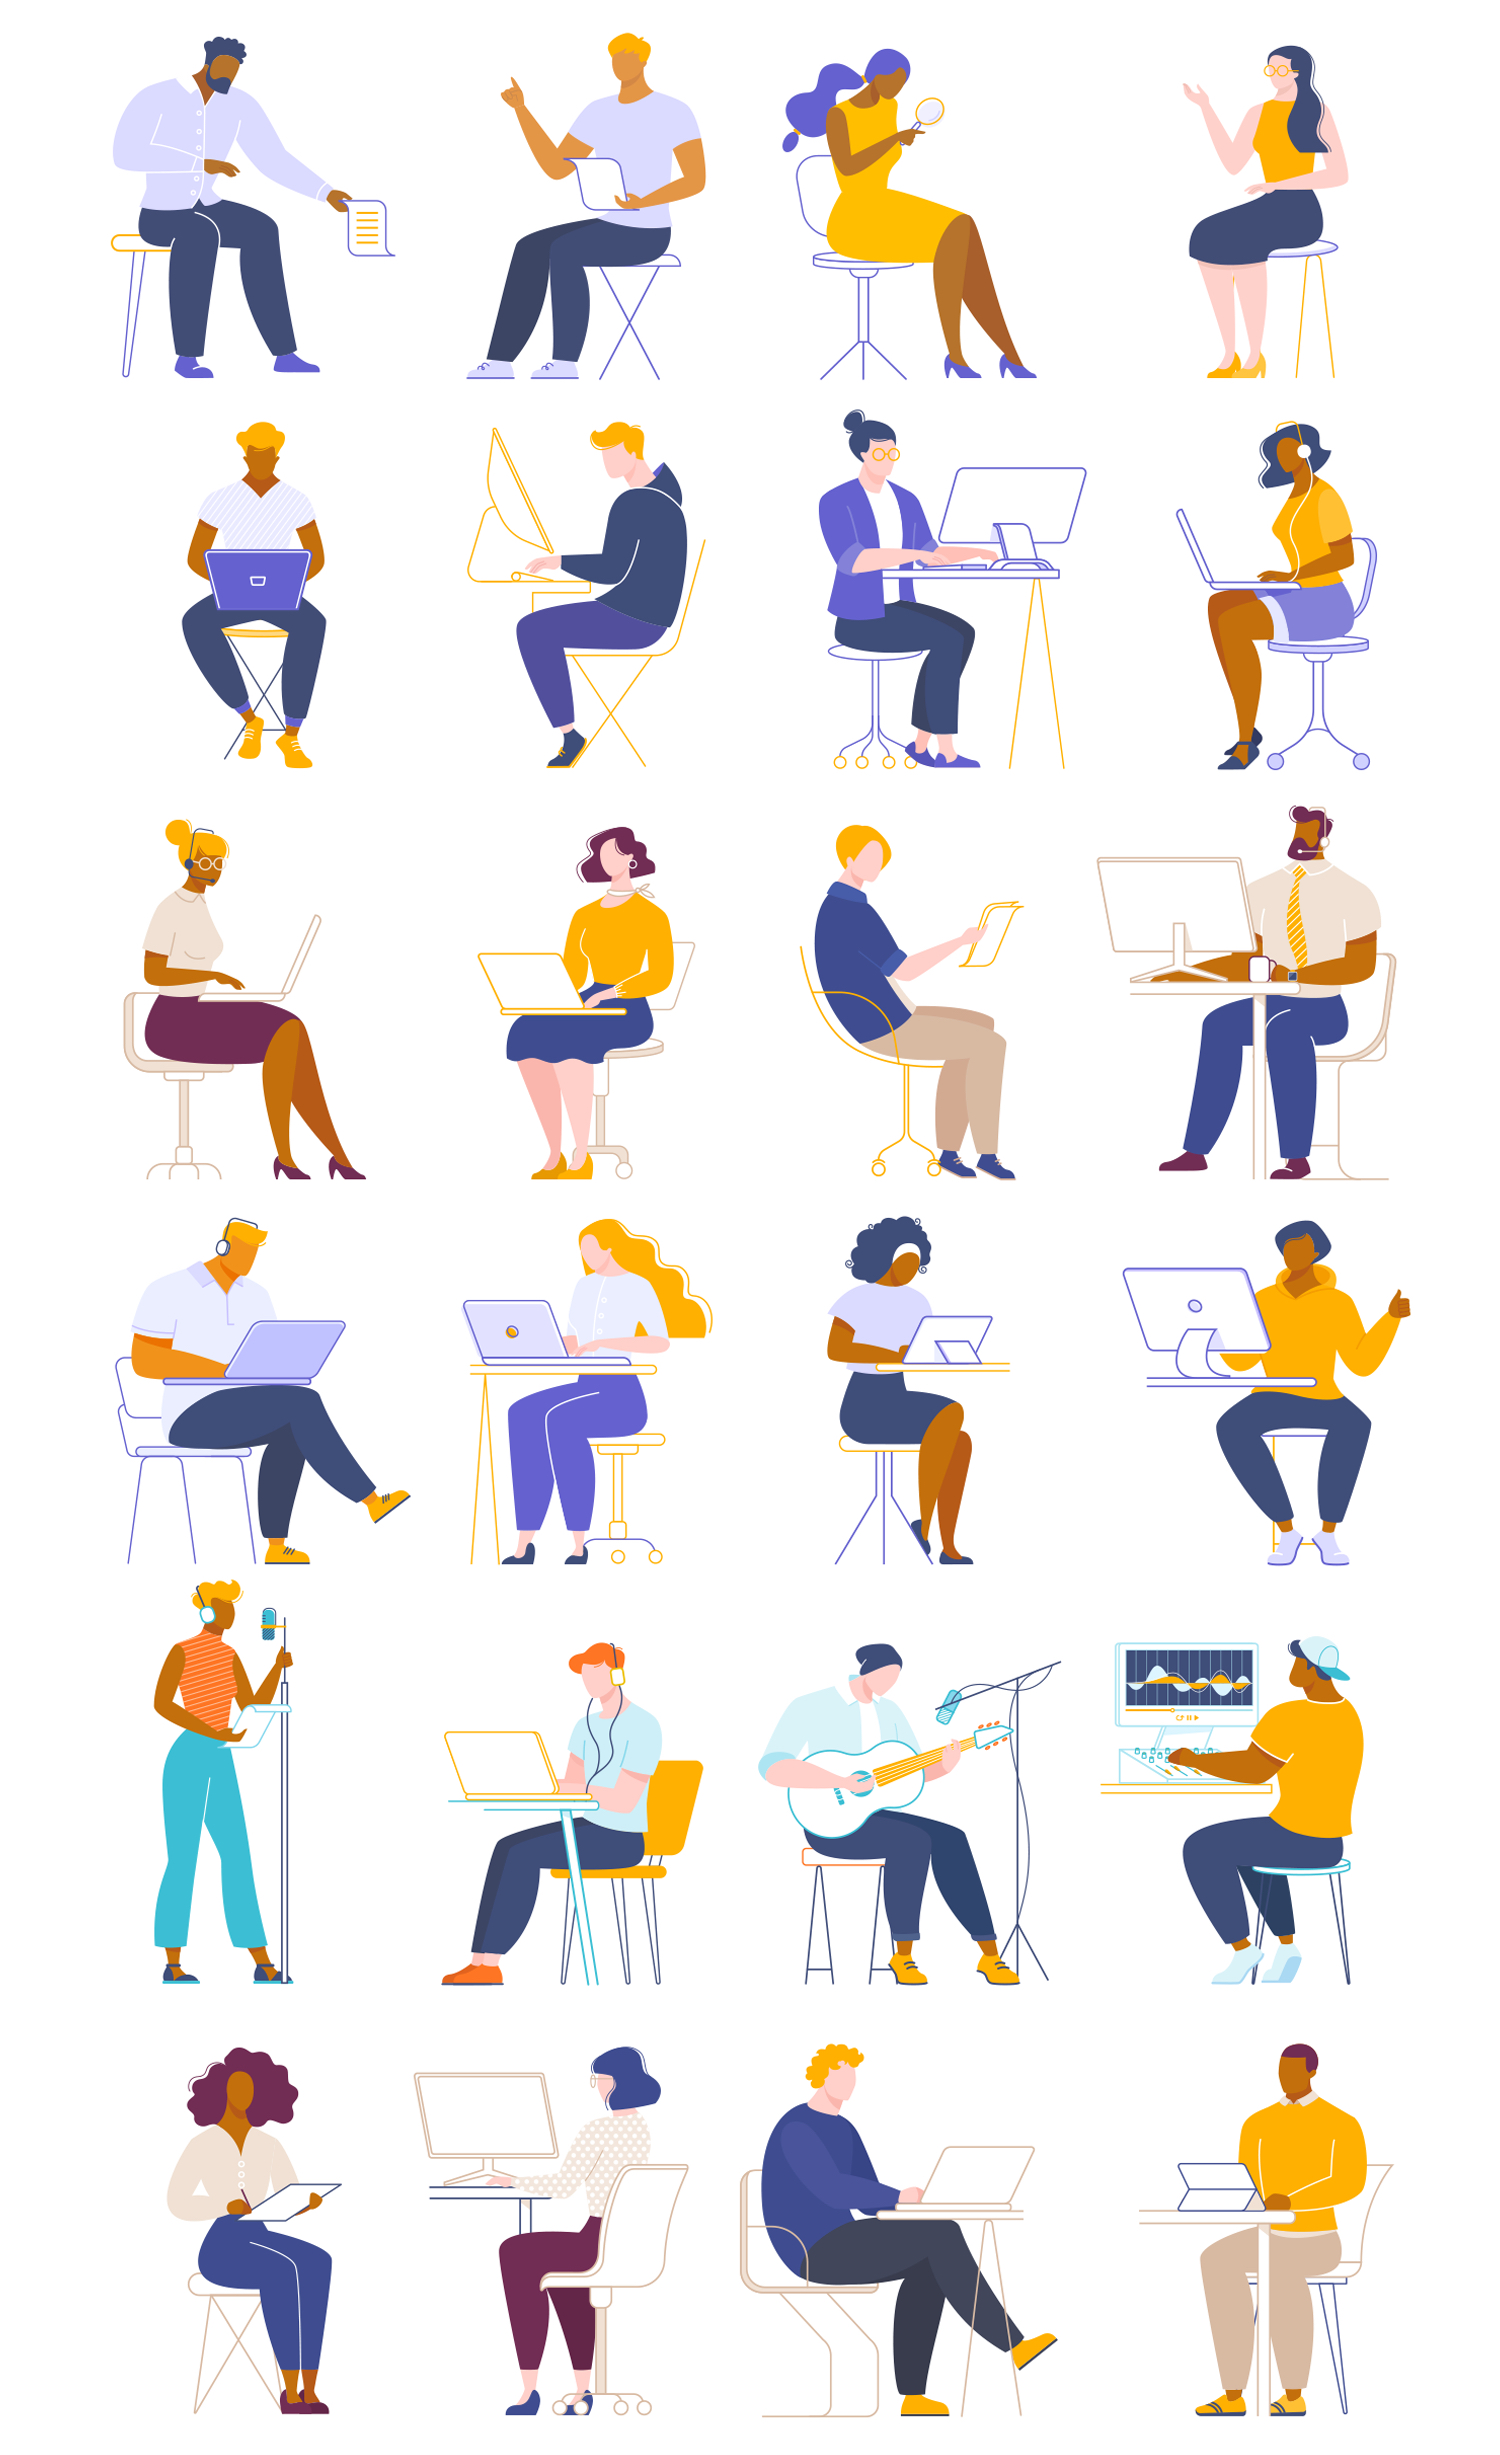 People Working Collaborating Illustrations - A free vector illustration pack of scenes and characters working, studying, typing, on calls, recording music, and creatively collaborating. No credit or attribution is needed, these illustrations are free to use for commercial and personal projects.